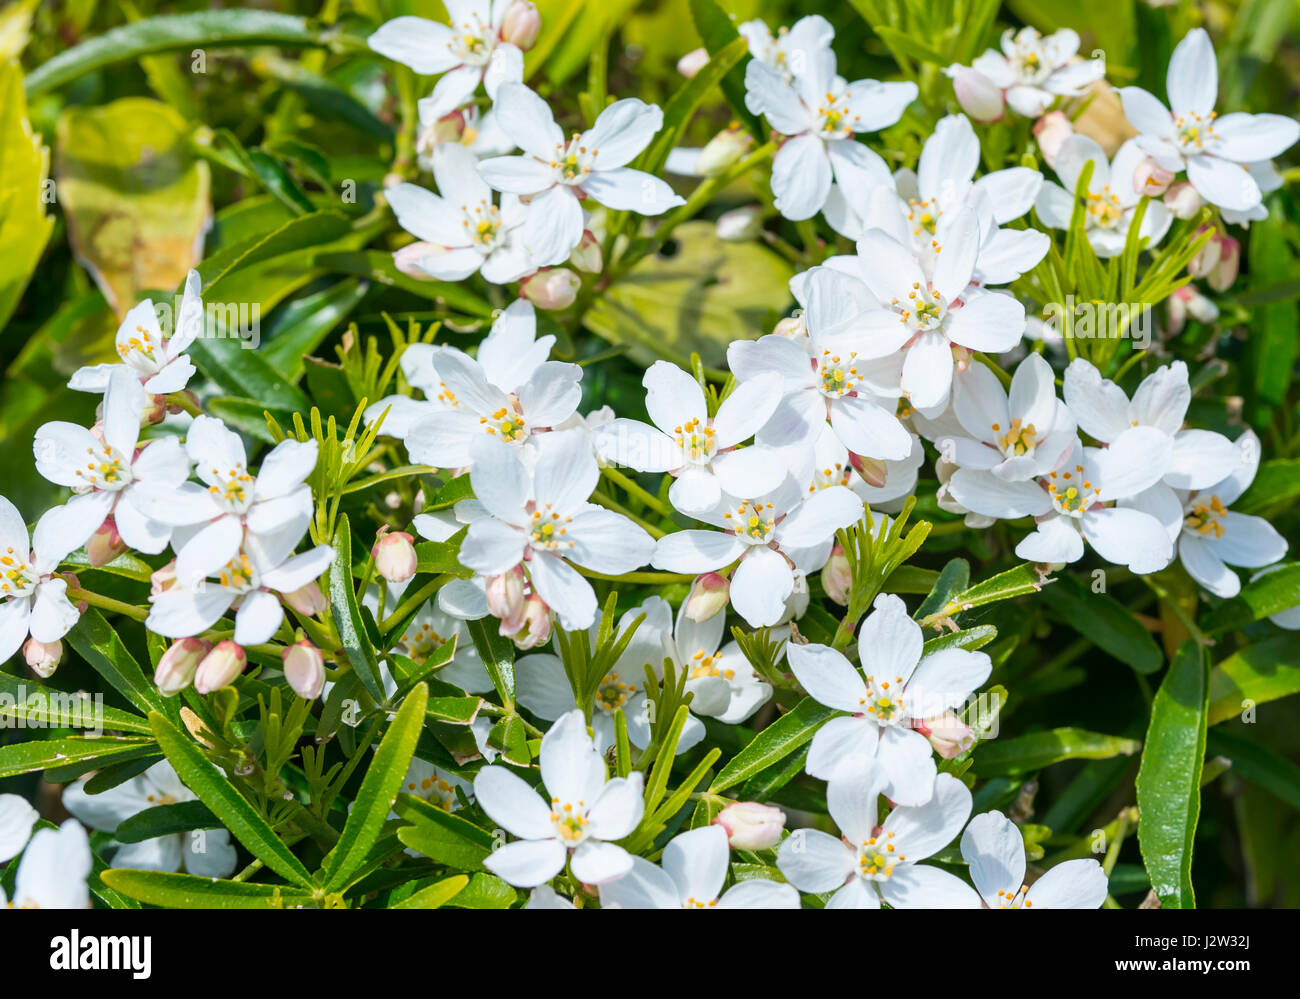 Small white flowers of the Mexican Orange Blossom (Choisya ternata) in late Spring/early Summer in the UK. - Stock Image